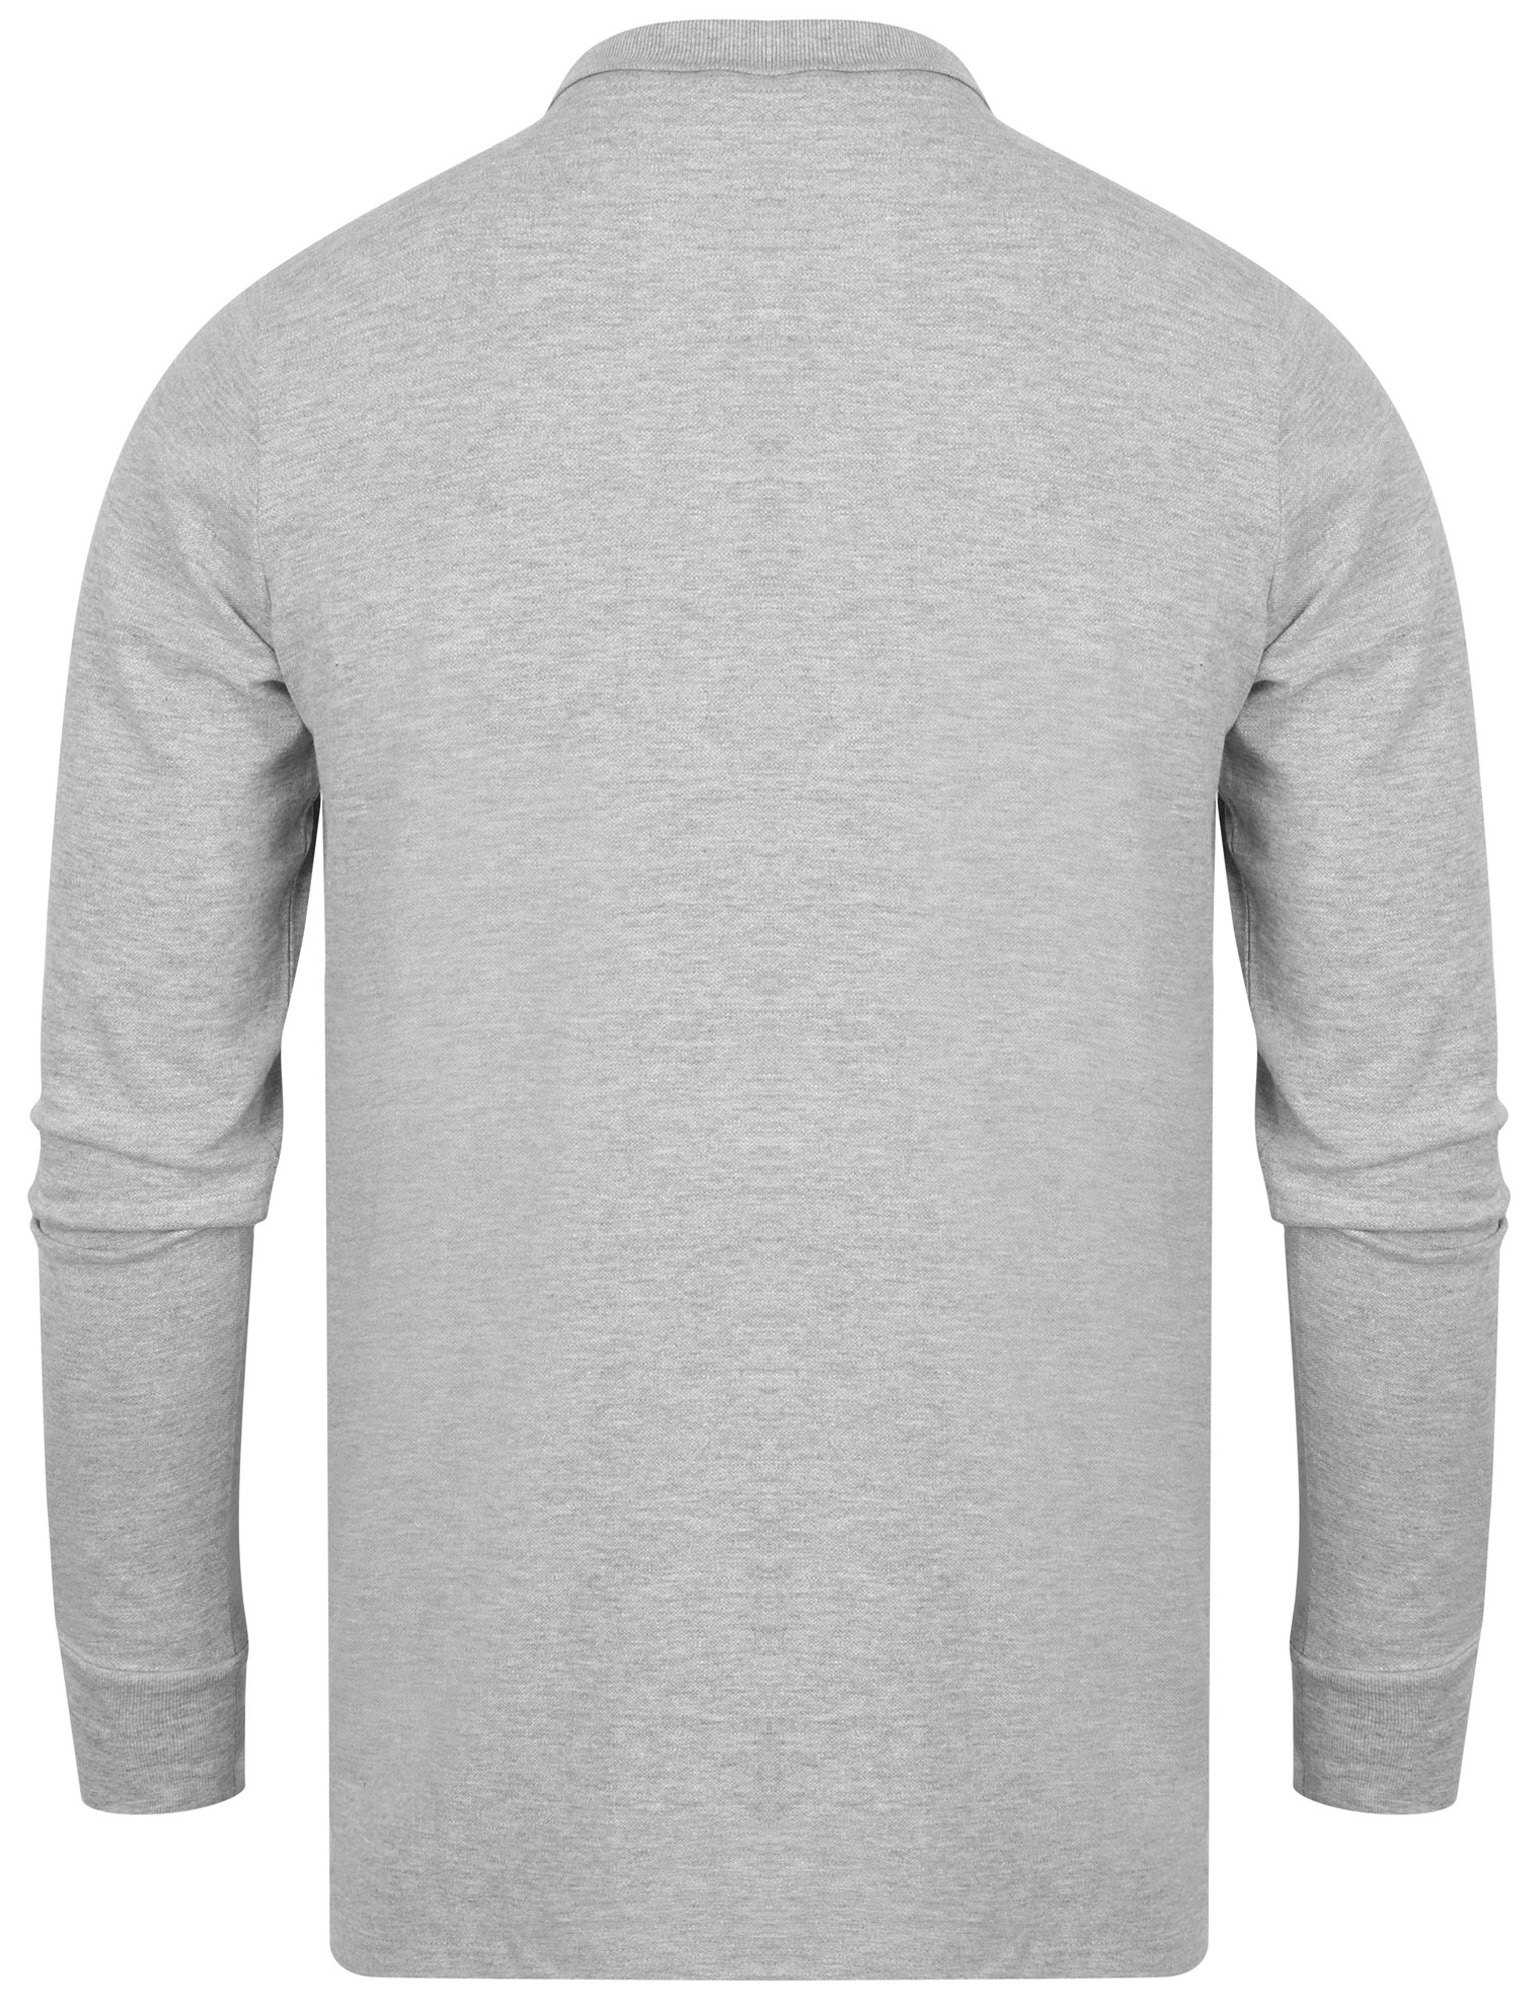 Tokyo-Laundry-Men-039-s-Cosenza-Long-Sleeve-Polo-Shirt-Top-Size-S-M-L-XL-XXL thumbnail 3